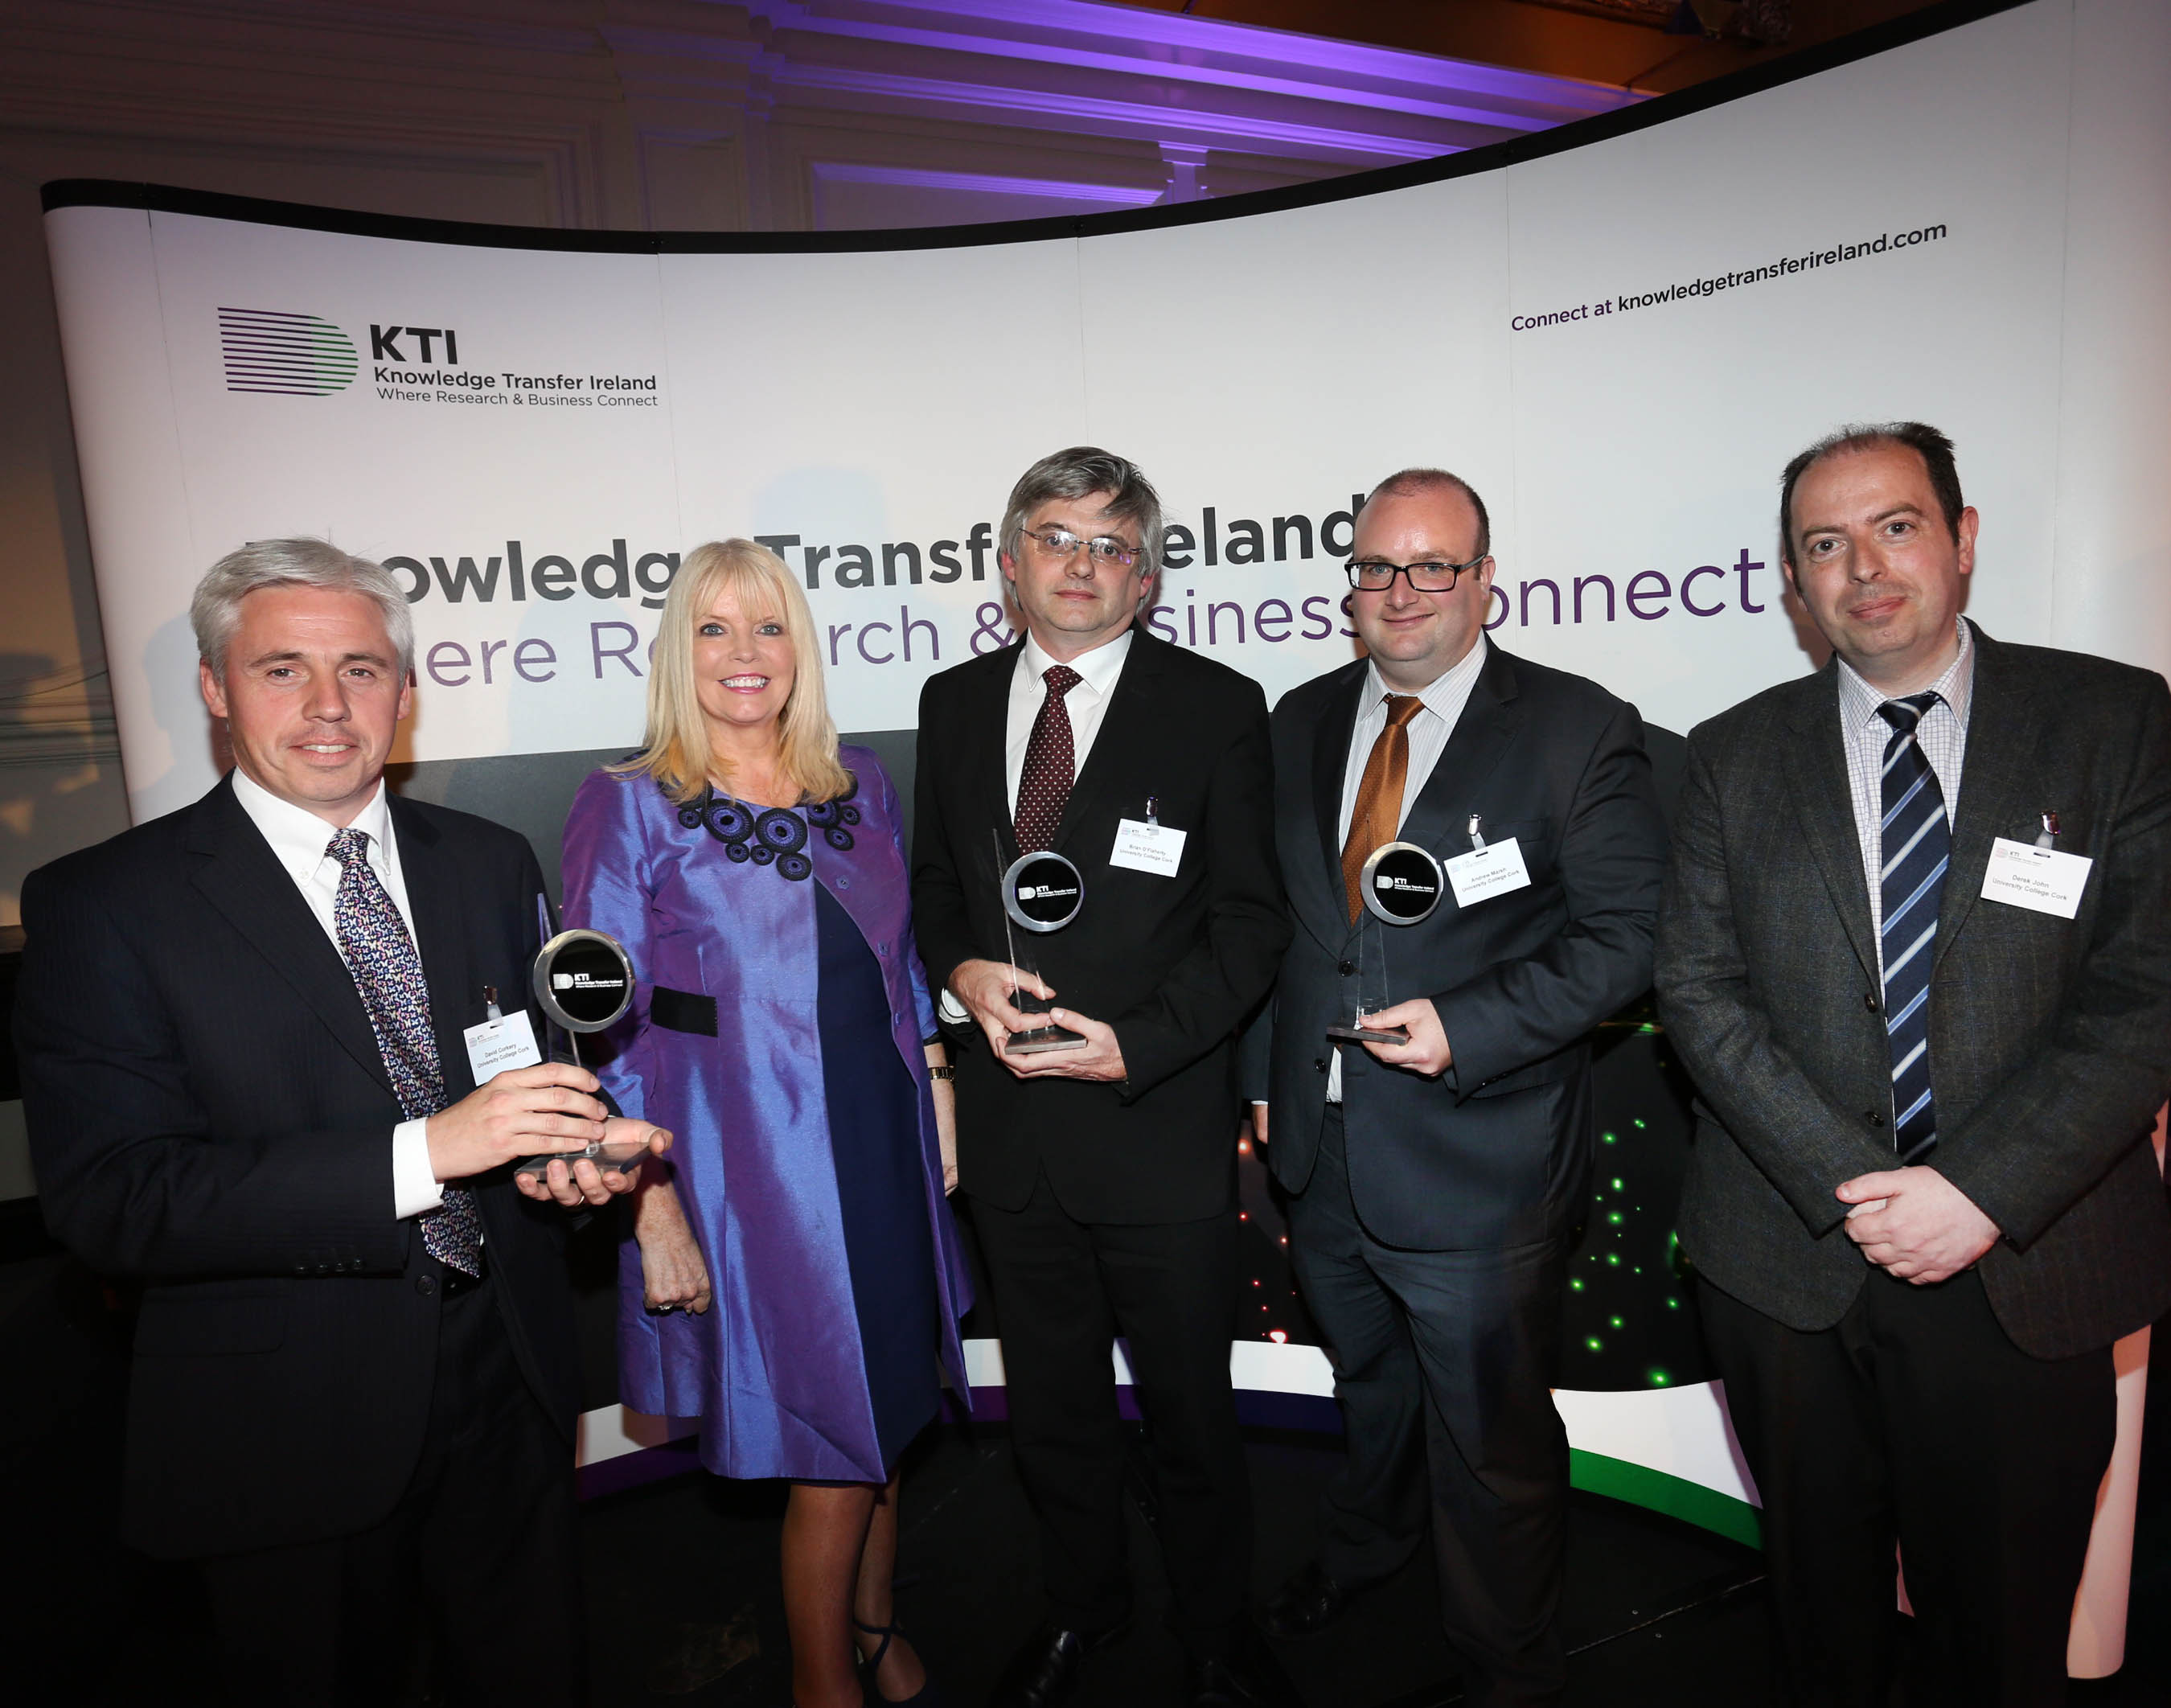 UCC Technology Transfer Office wins at national Knowledge Transfer awards ceremony